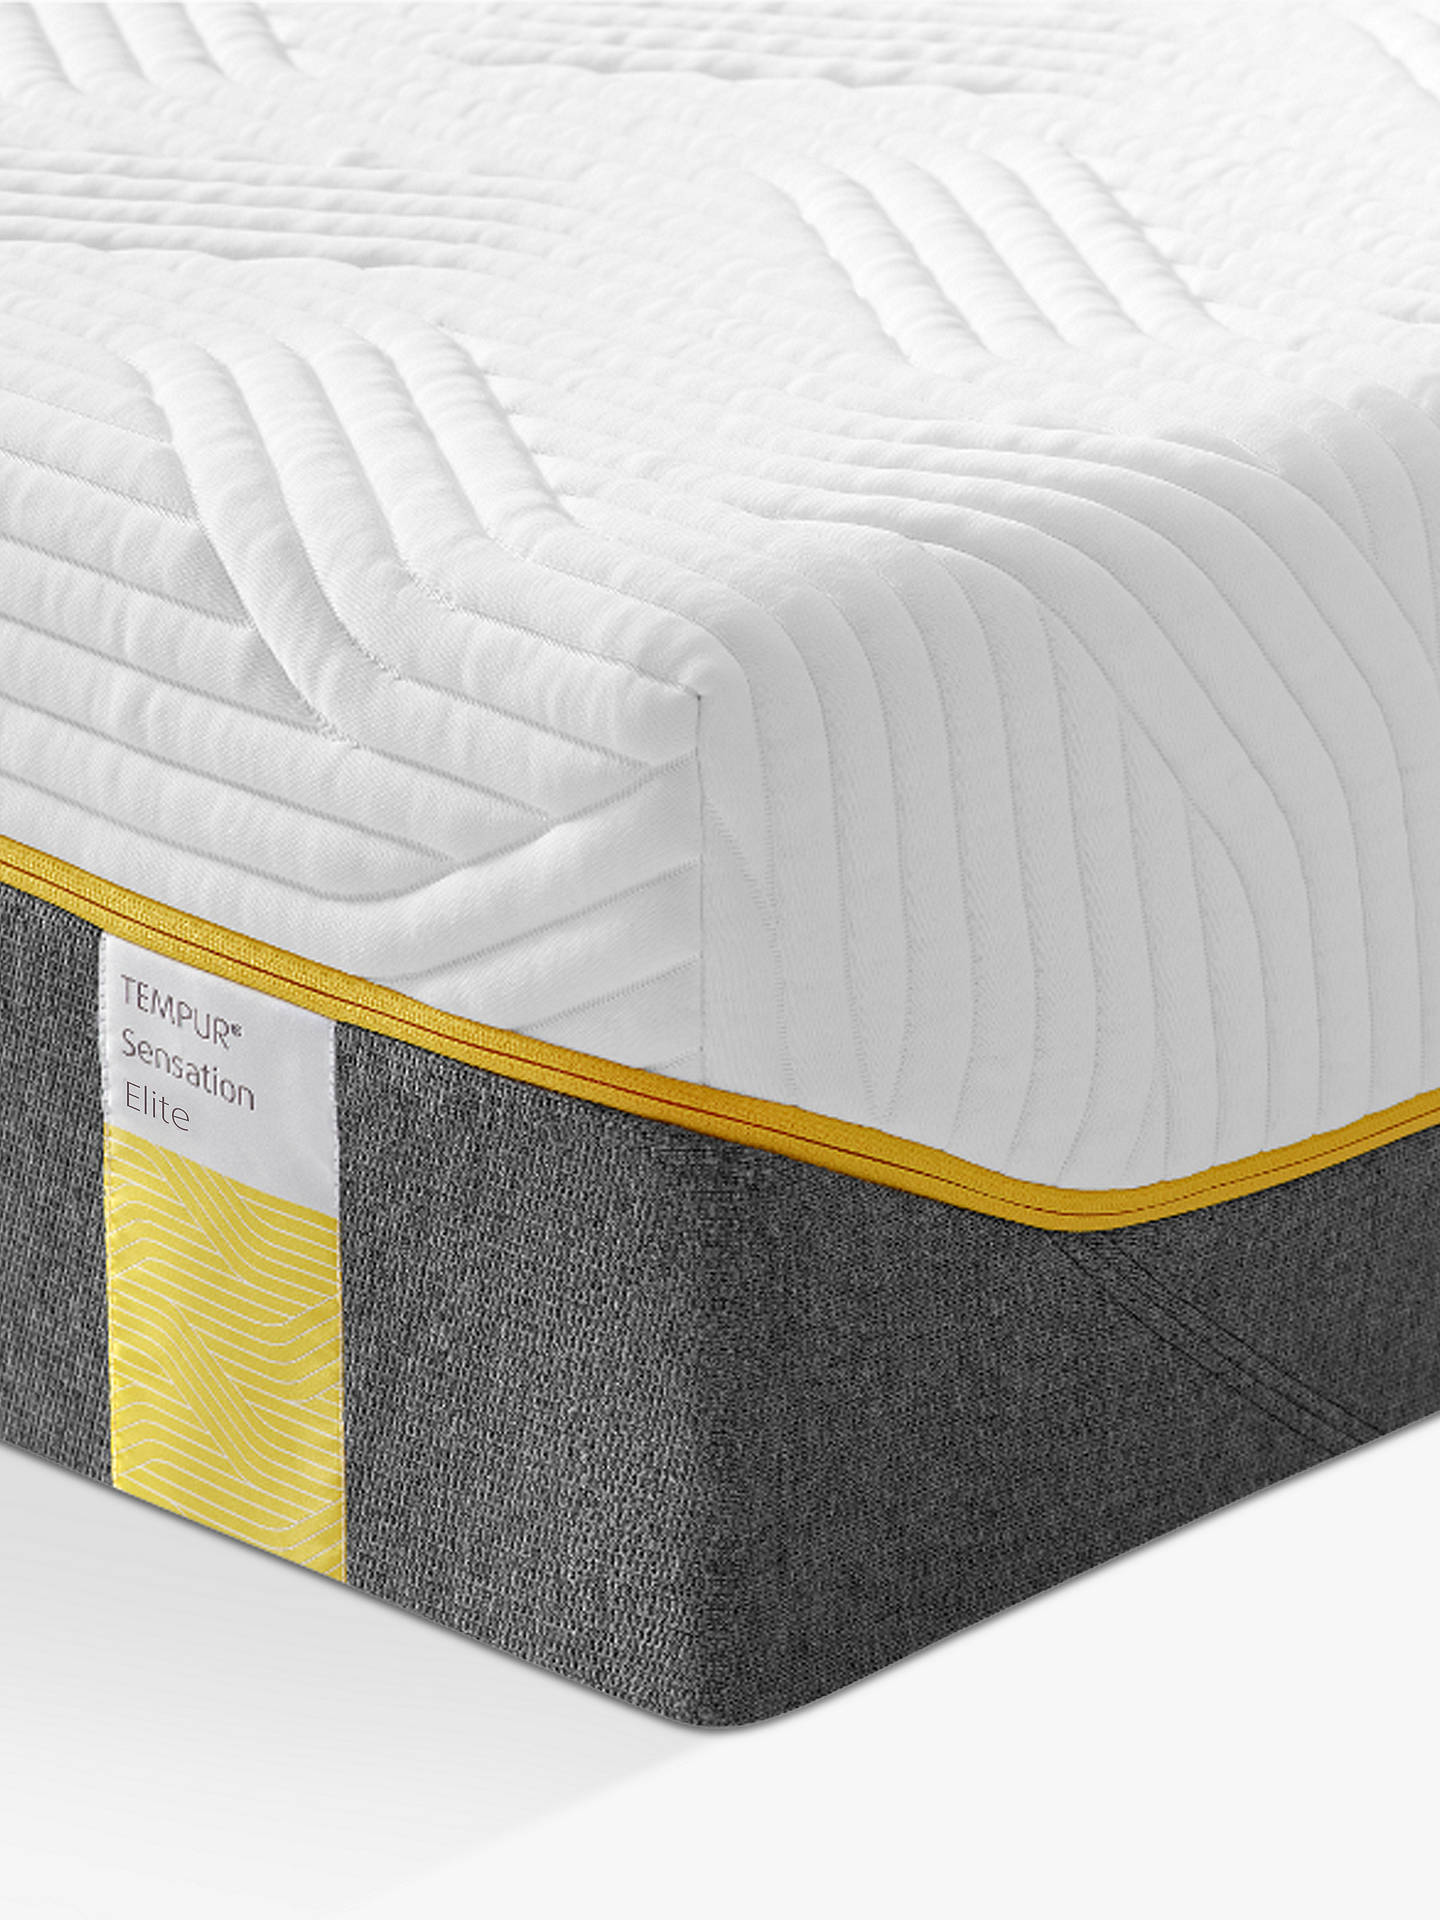 Buy Tempur Sensation Elite 25 Memory Foam Mattress, Firm Tension, Super King Size Online at johnlewis.com